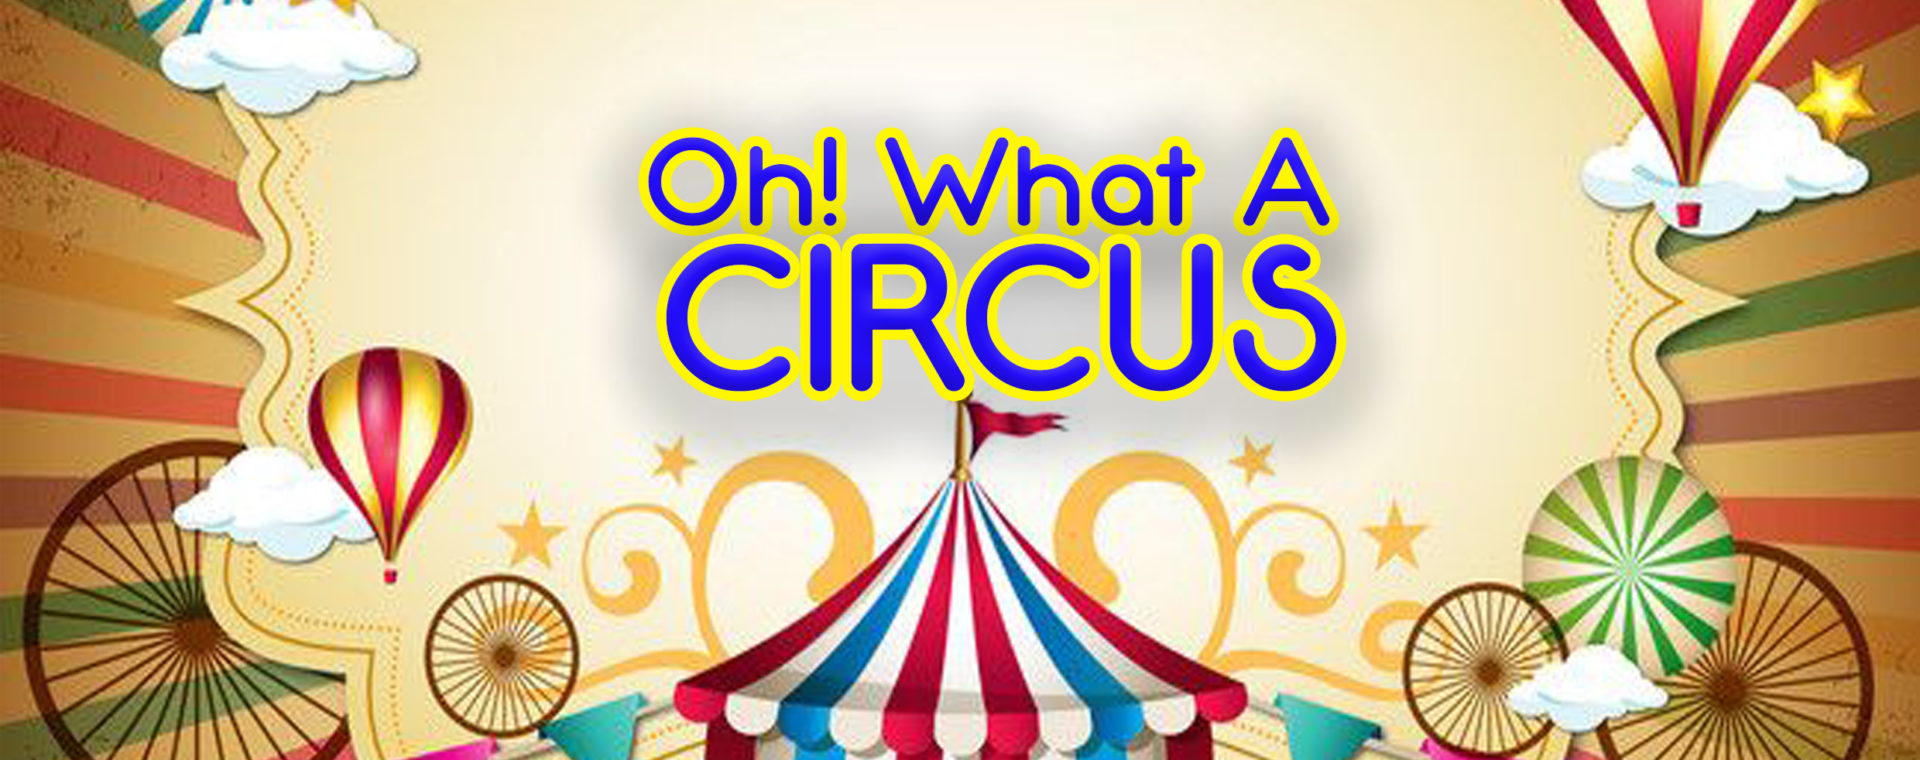 Oh! What A Circus